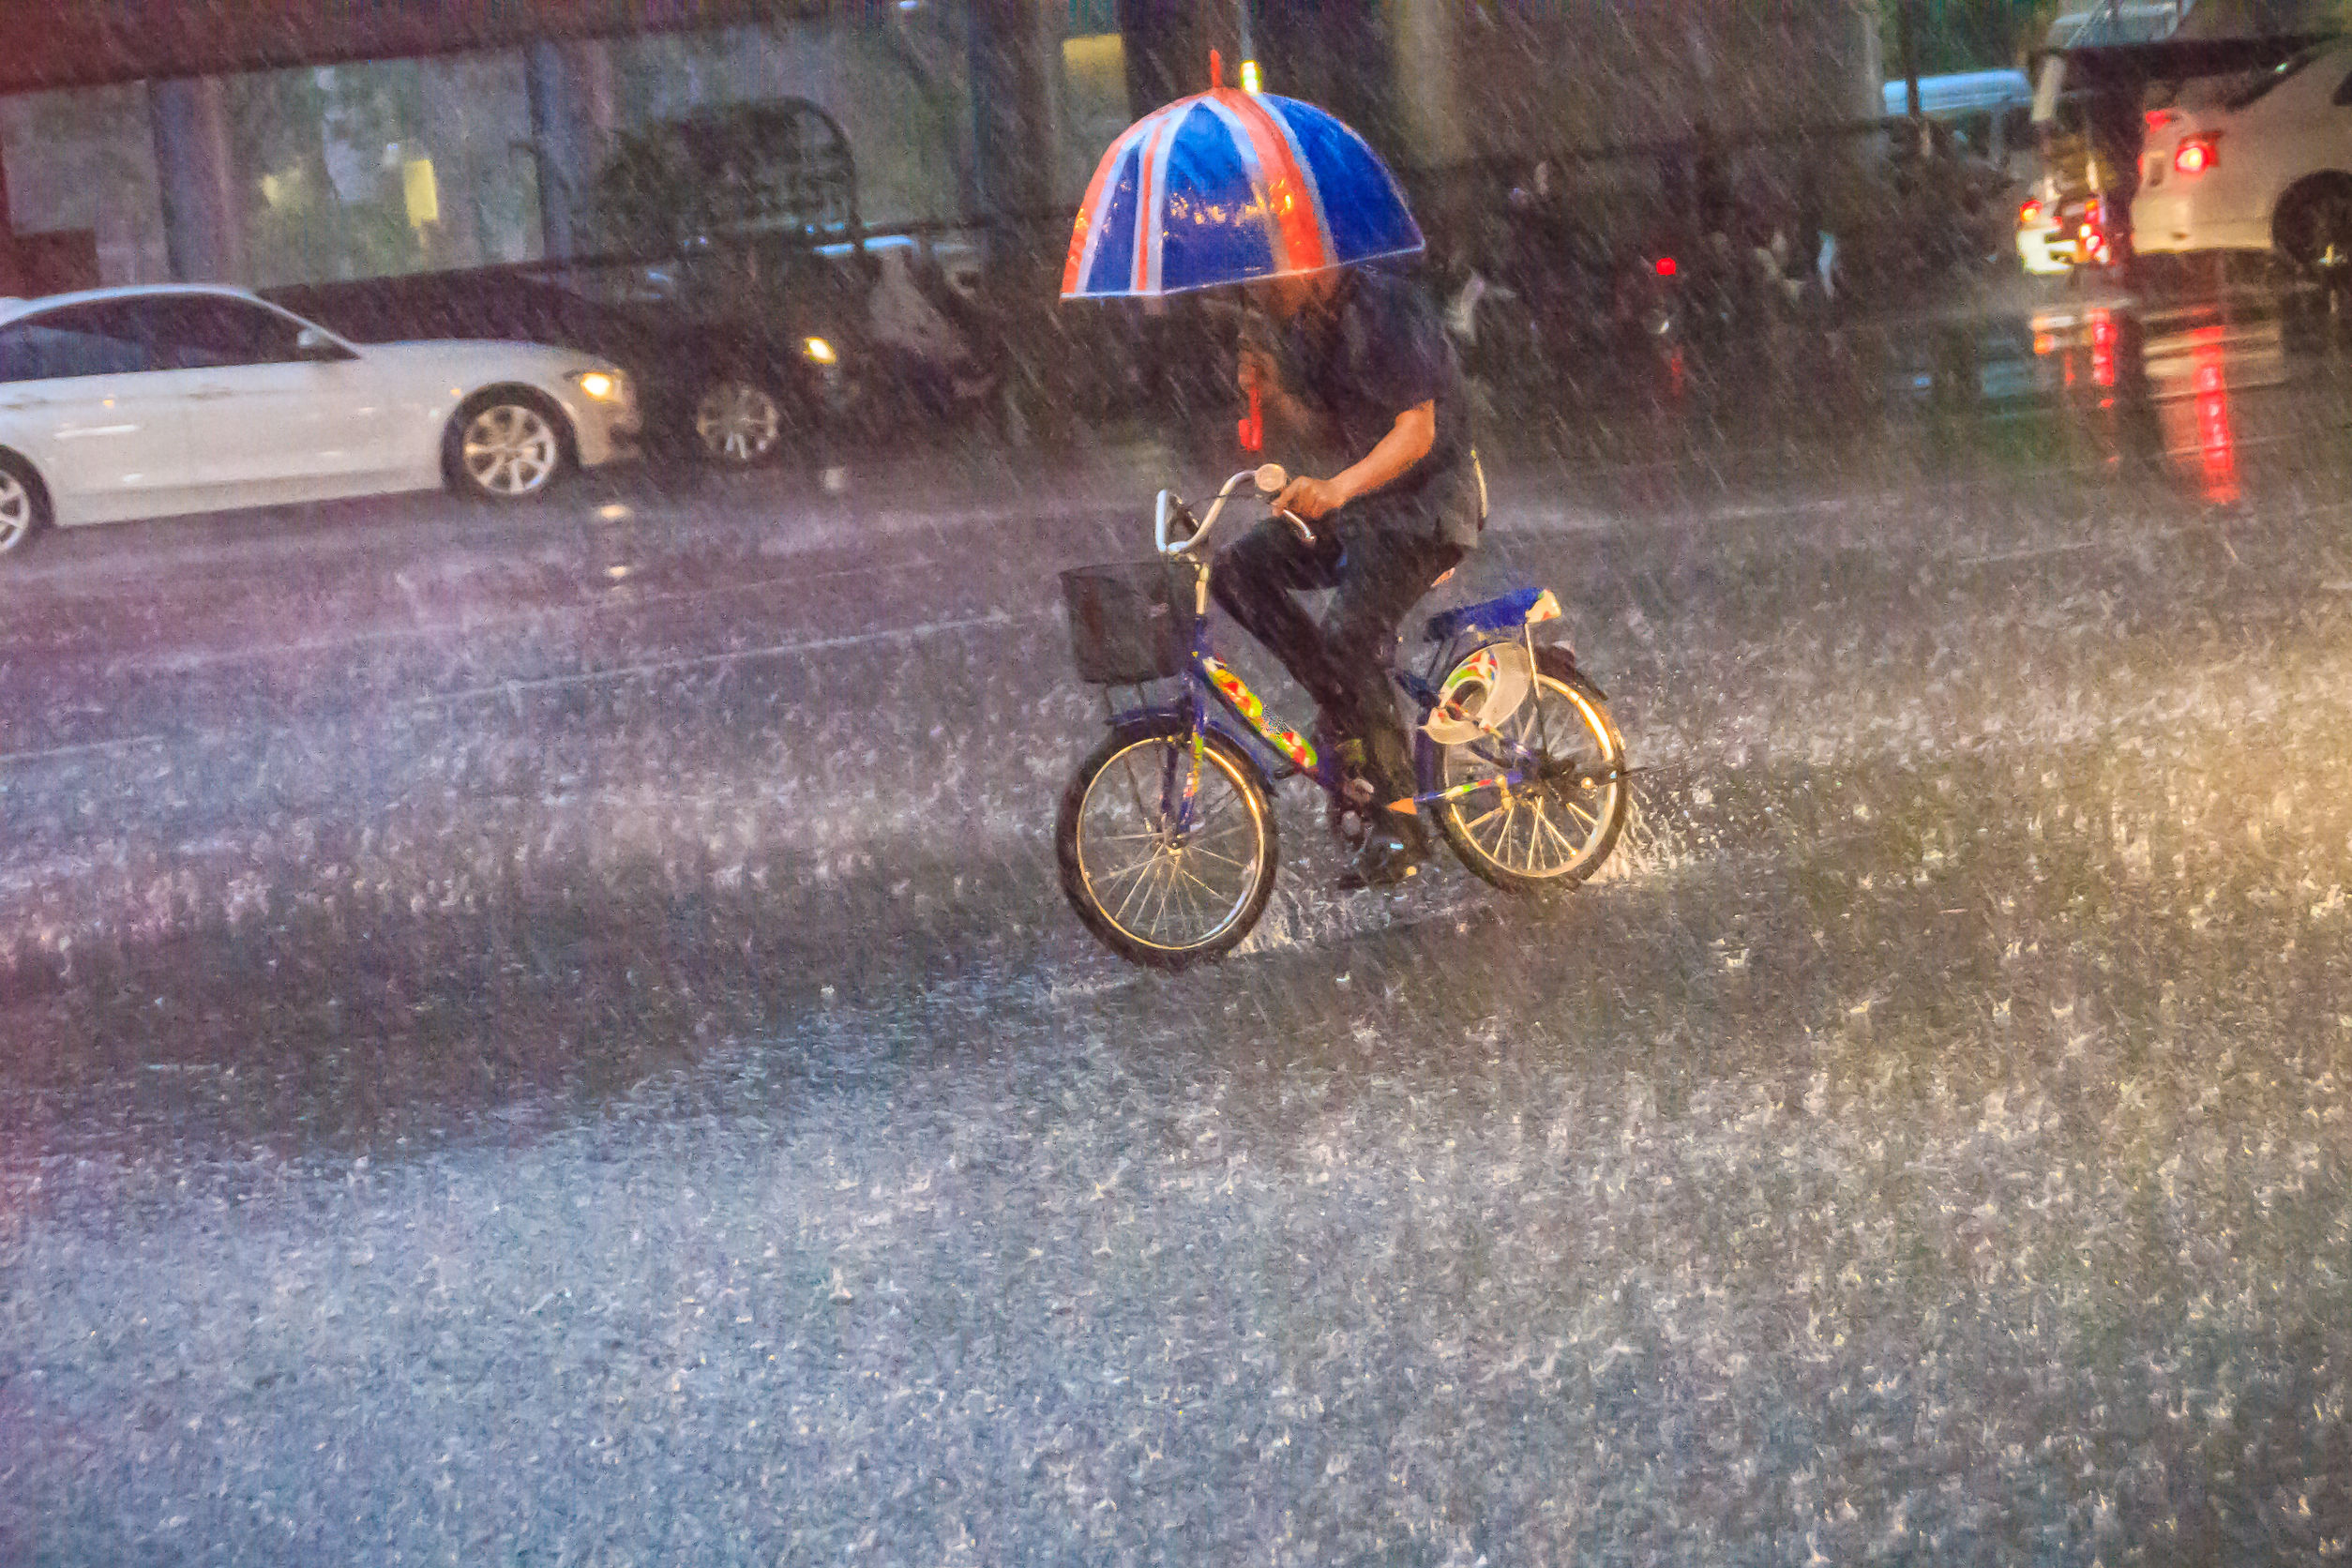 A man is ridding the bicycle under a heavy rain on the street in the evening. Unidentified man is riding a bicycle and carrying an umbrella in heavy rain on a street.